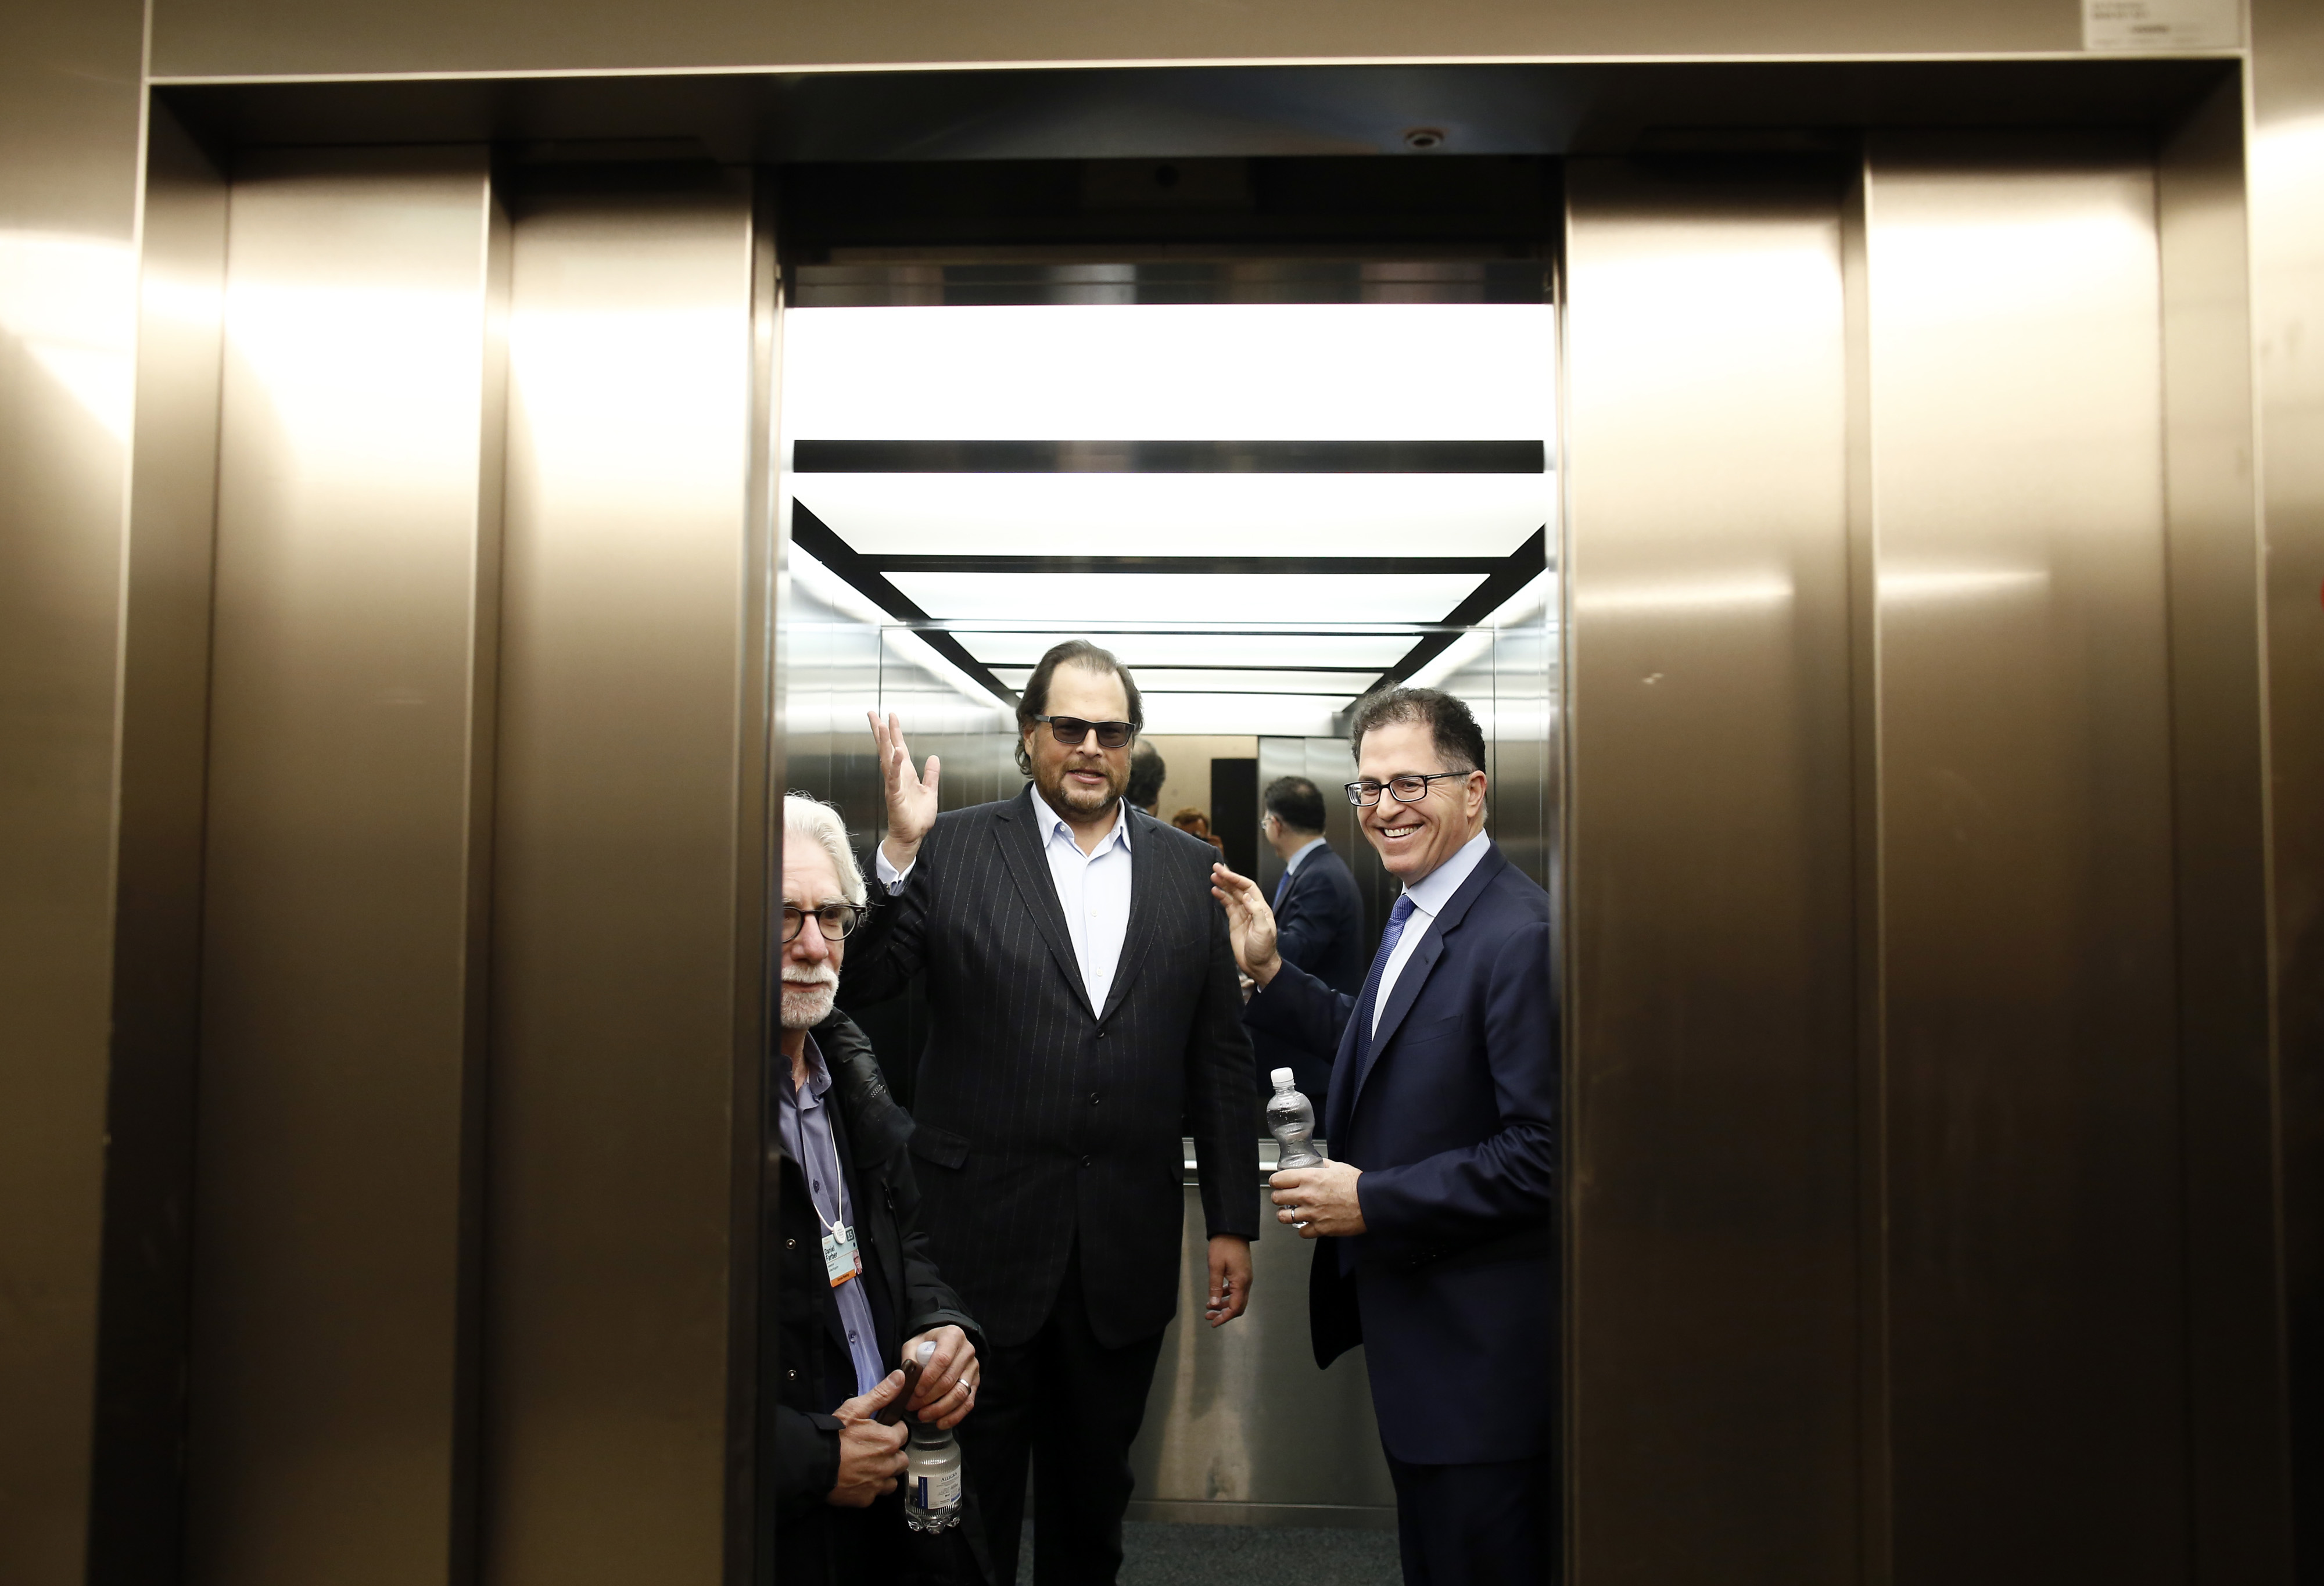 Marc Benioff, chairman and chief executive officer of Salesforce.com Inc., center, and Michael Dell, chairman and chief executive officer of Dell Inc., right, wave from inside an elevator following a Bloomberg Television interview on day two of the World Economic Forum (WEF) in Davos, Switzerland, on Jan. 22, 2015.